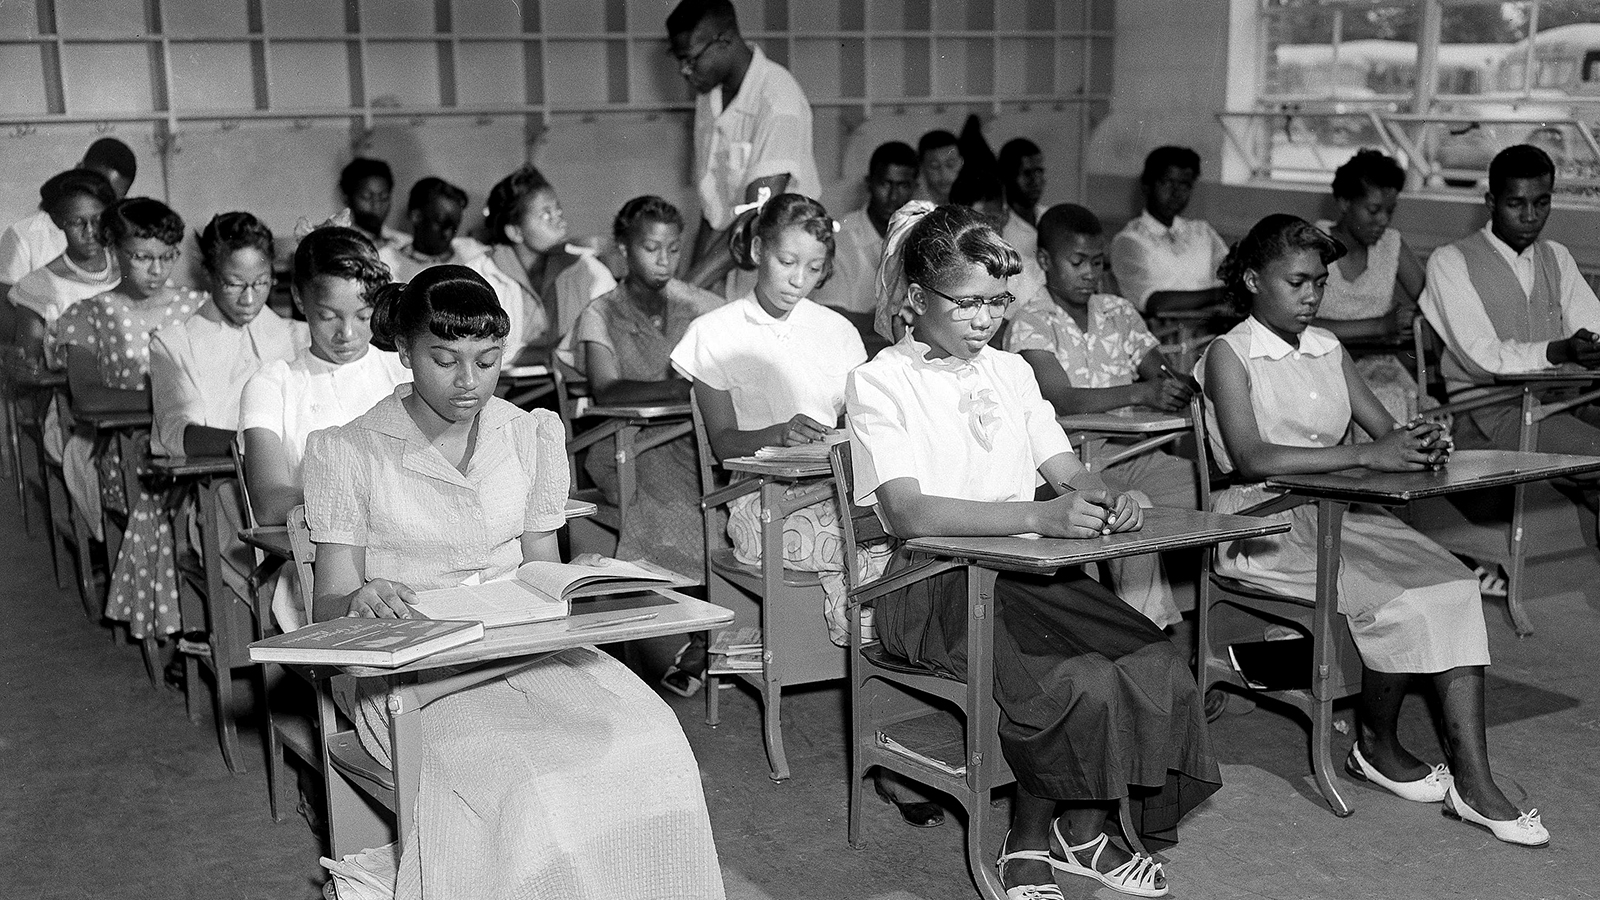 A segregated ninth-grade classroom in Summerton, South Carolina in 1954.